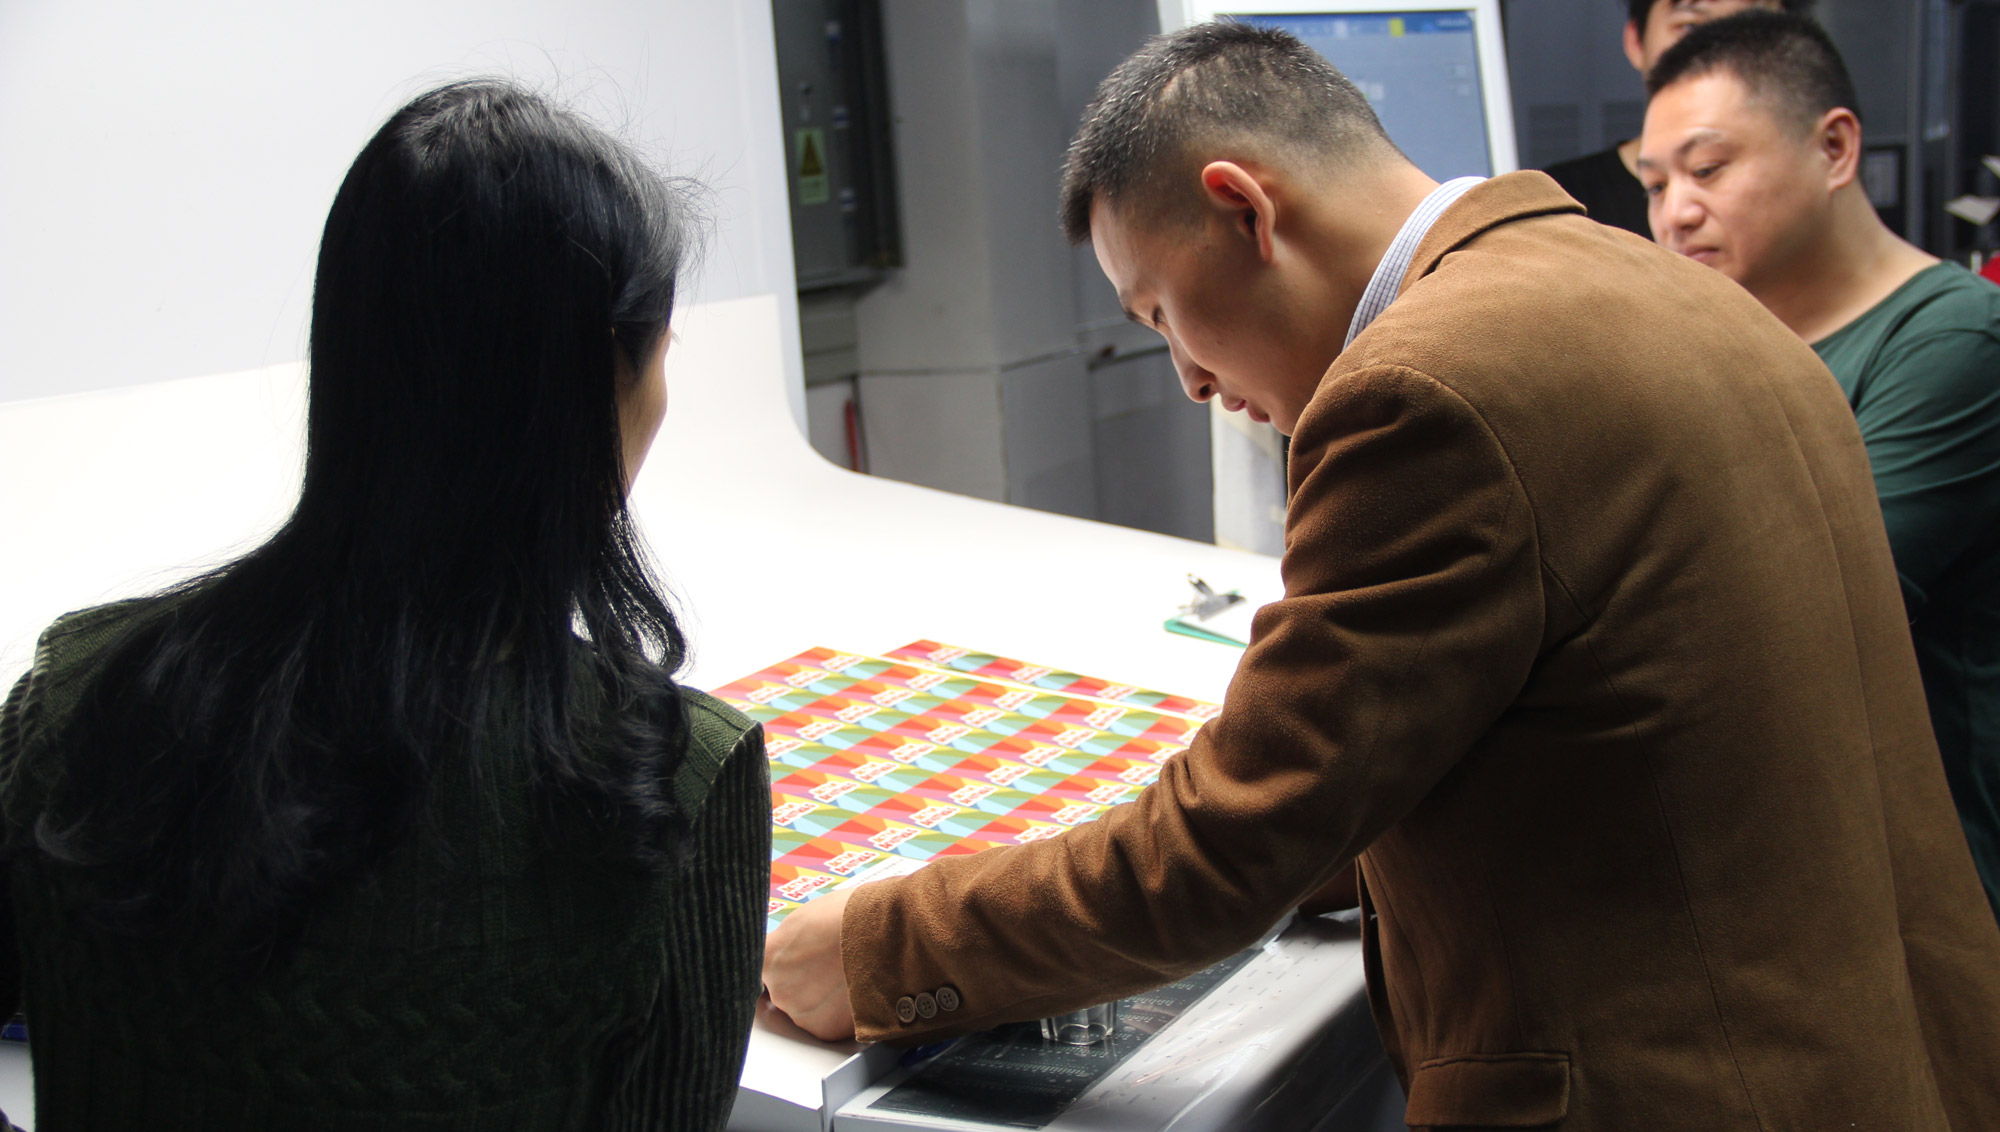 Photo Book Printing inspection for the Offset Printing process